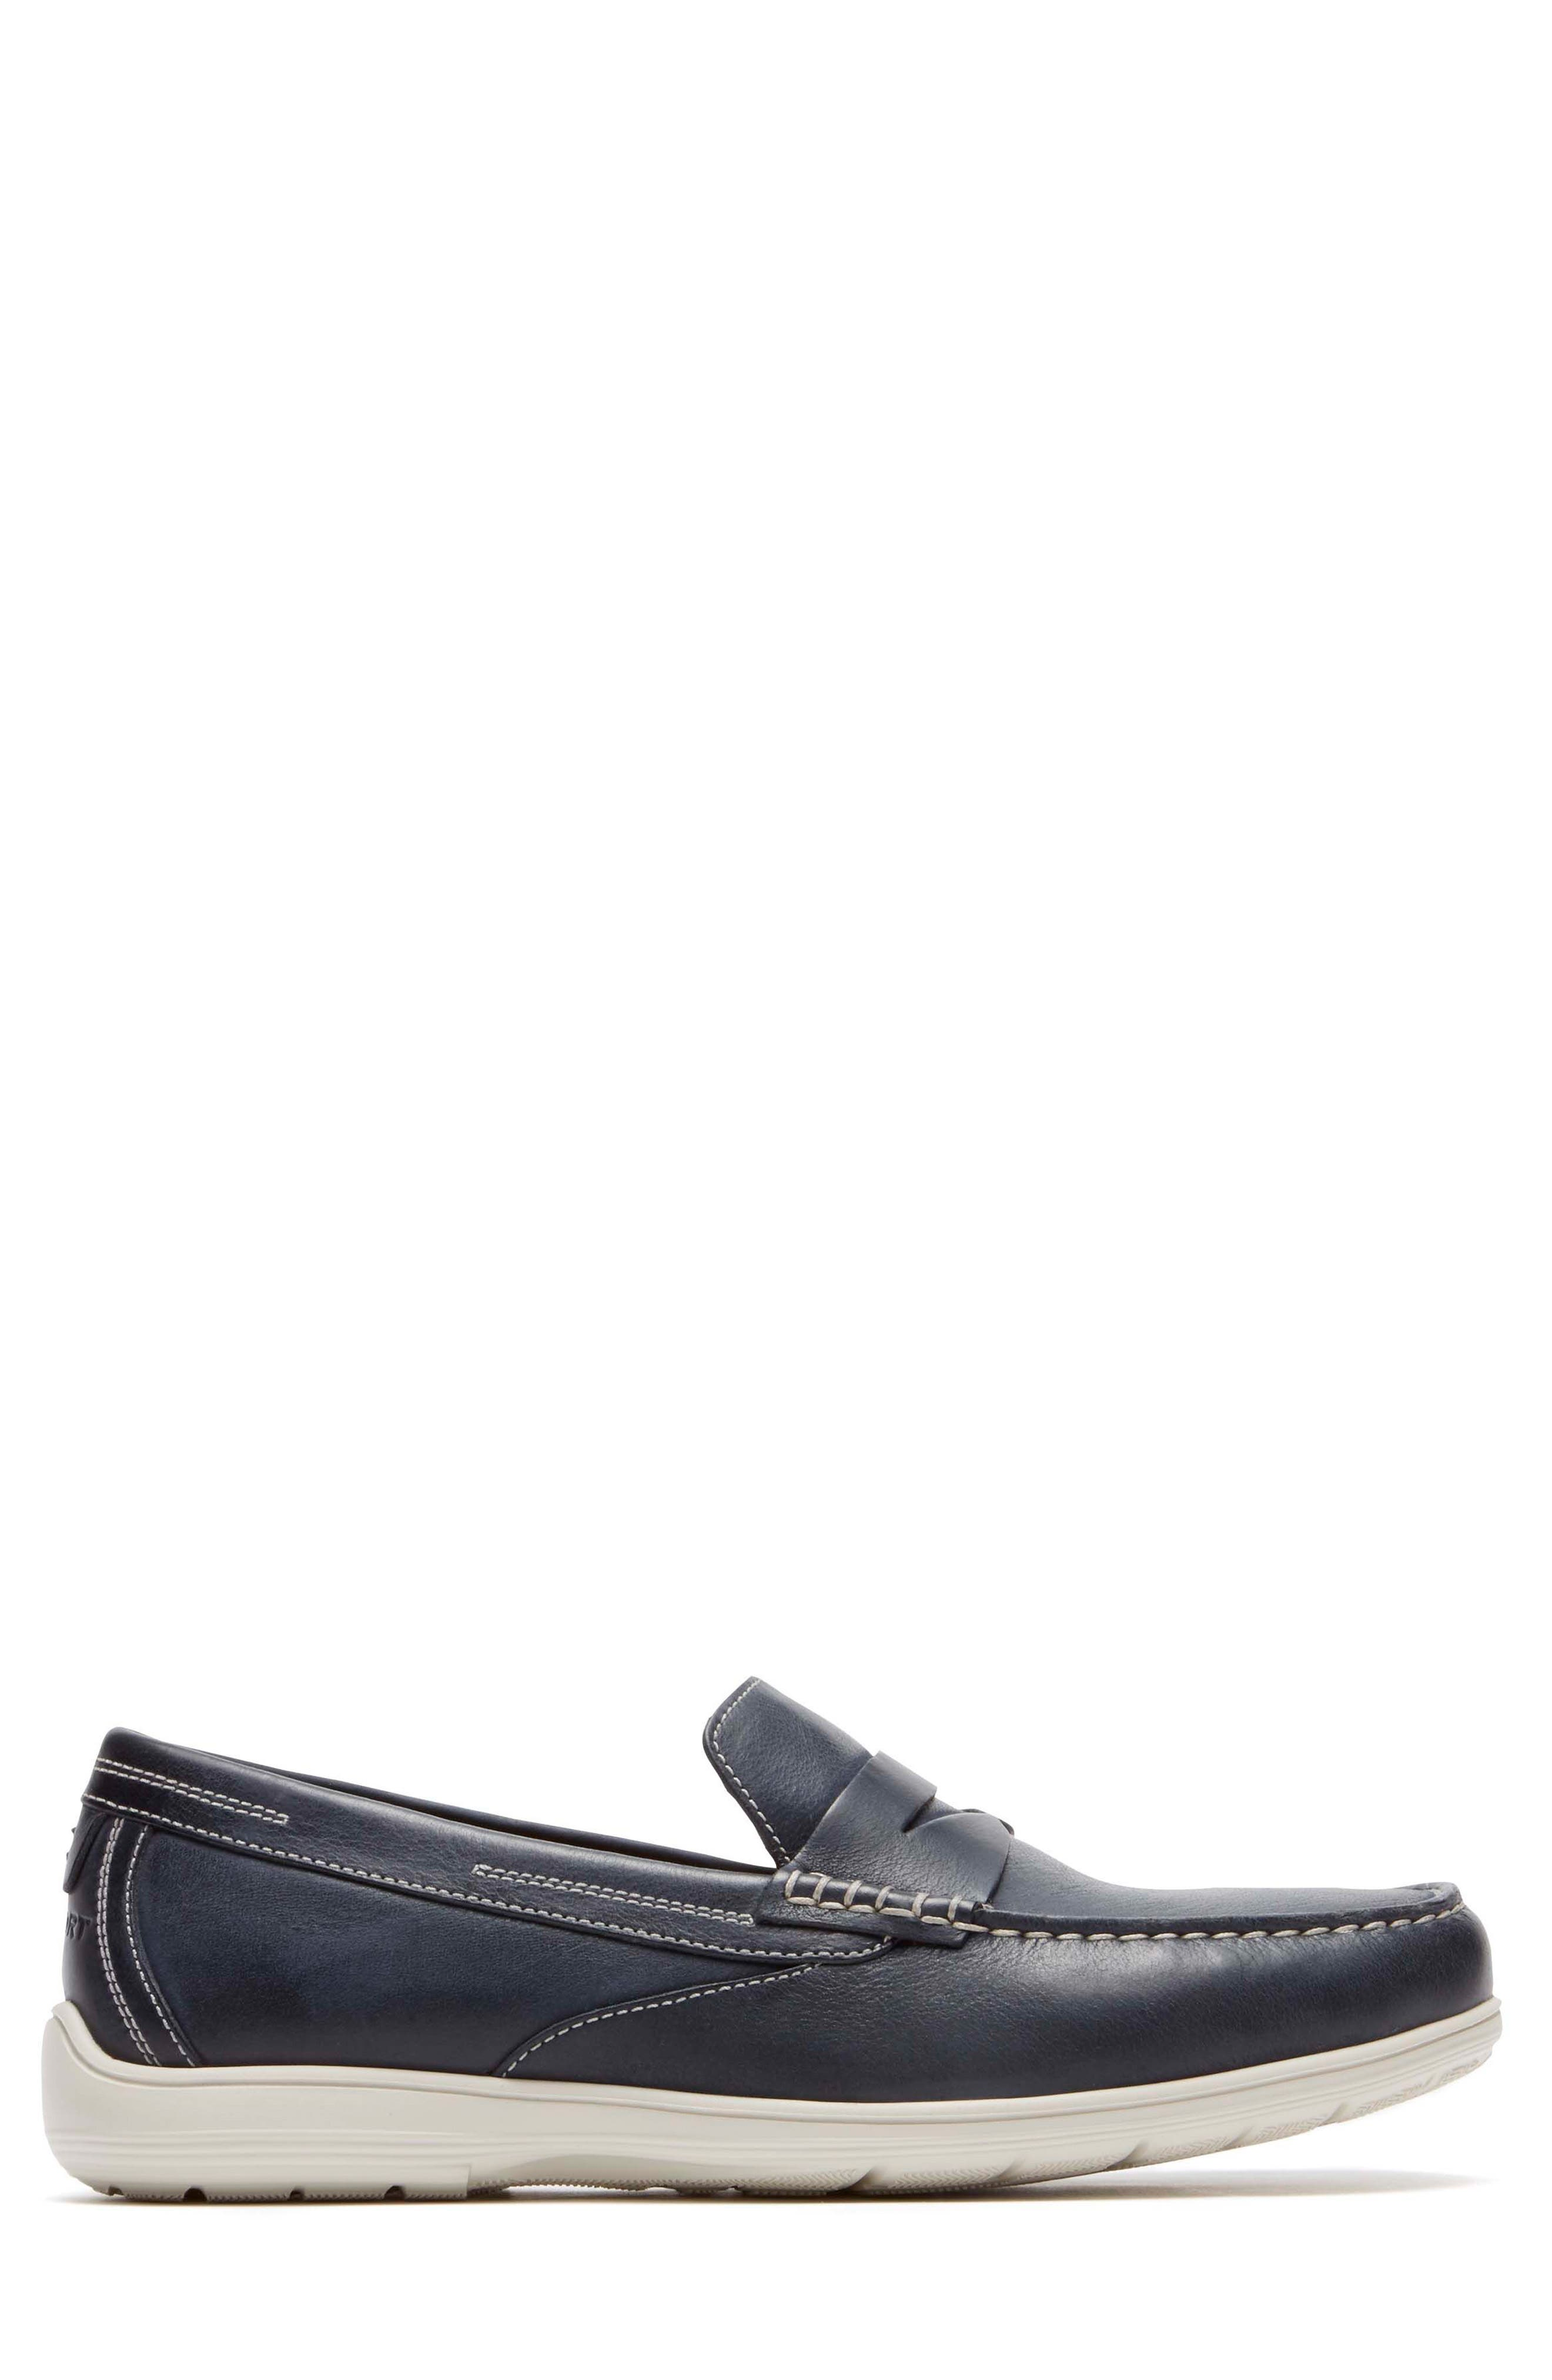 Total Motion Penny Loafer,                             Alternate thumbnail 9, color,